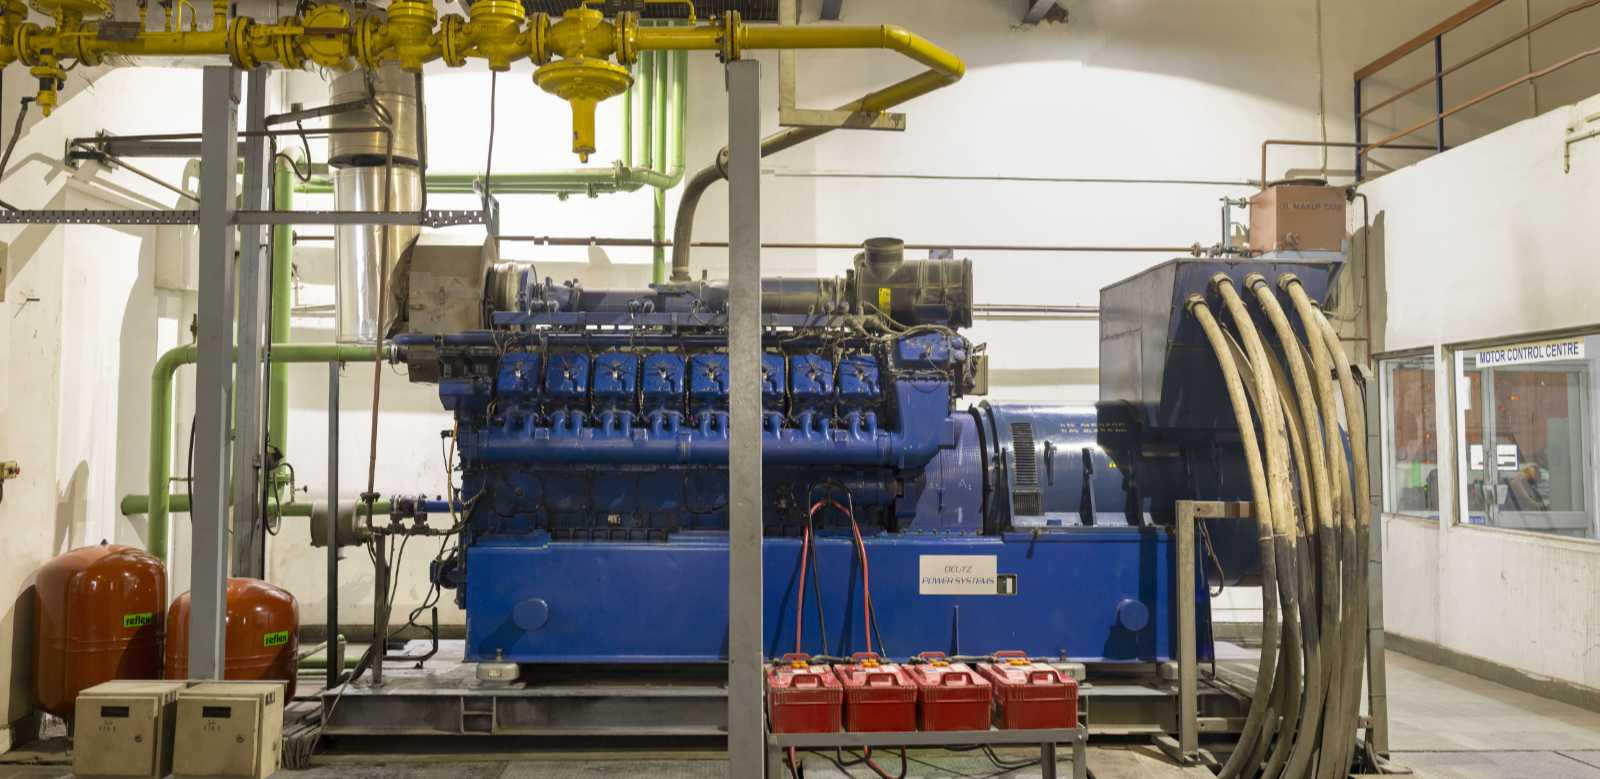 Amul Dairy: MWM TBG 620 V16K Gas Engine Ensures 100-Percent Capacity Utilization and Uninterrupted Dairy Operations